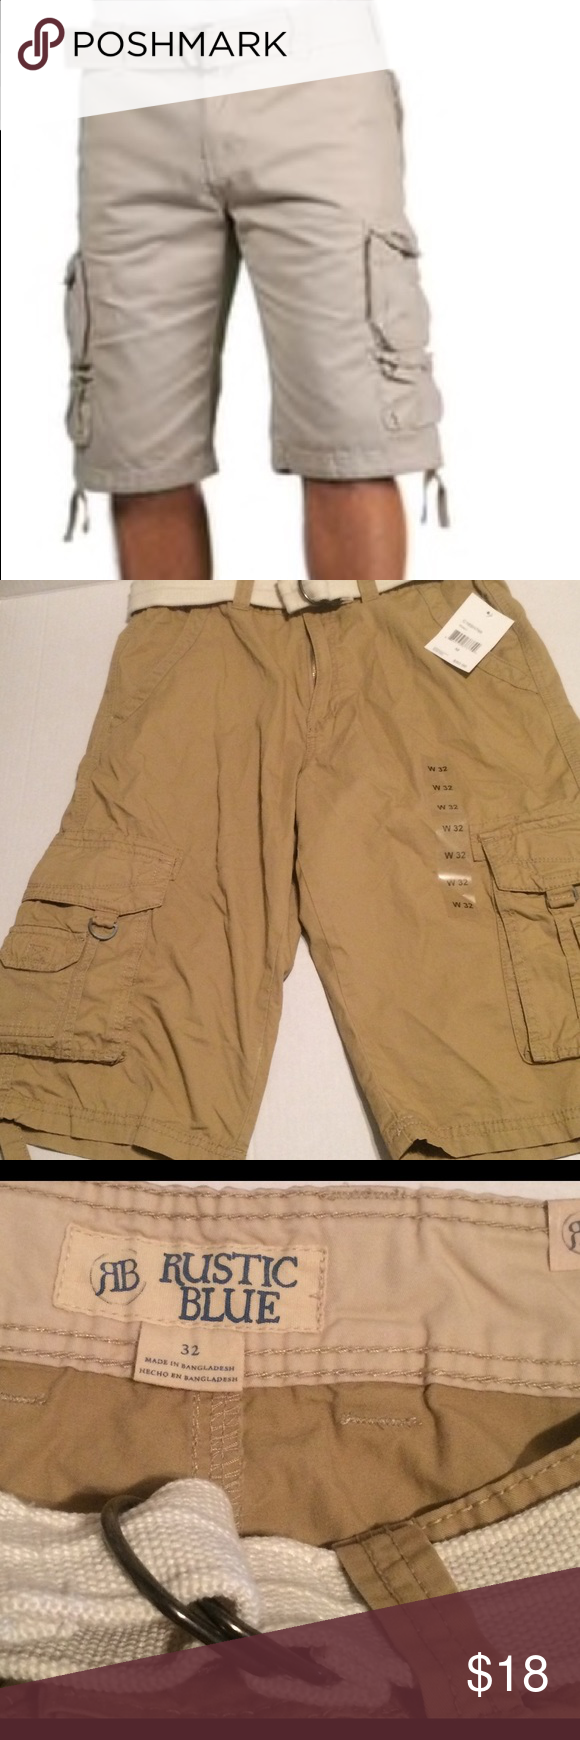 Rustic Blue Khakis Cargo Shorts NWT Size 32 Rustic Blue Khakis Cargo Shorts NWT Size 32. New, unworn, and the original tags attached. 25 inches in length. 100% cotton. 4 front pockets and 2 back pockets. Comes from a smoke and pet free home. Thanks for looking 😊 Rustic Blue Shorts Cargo